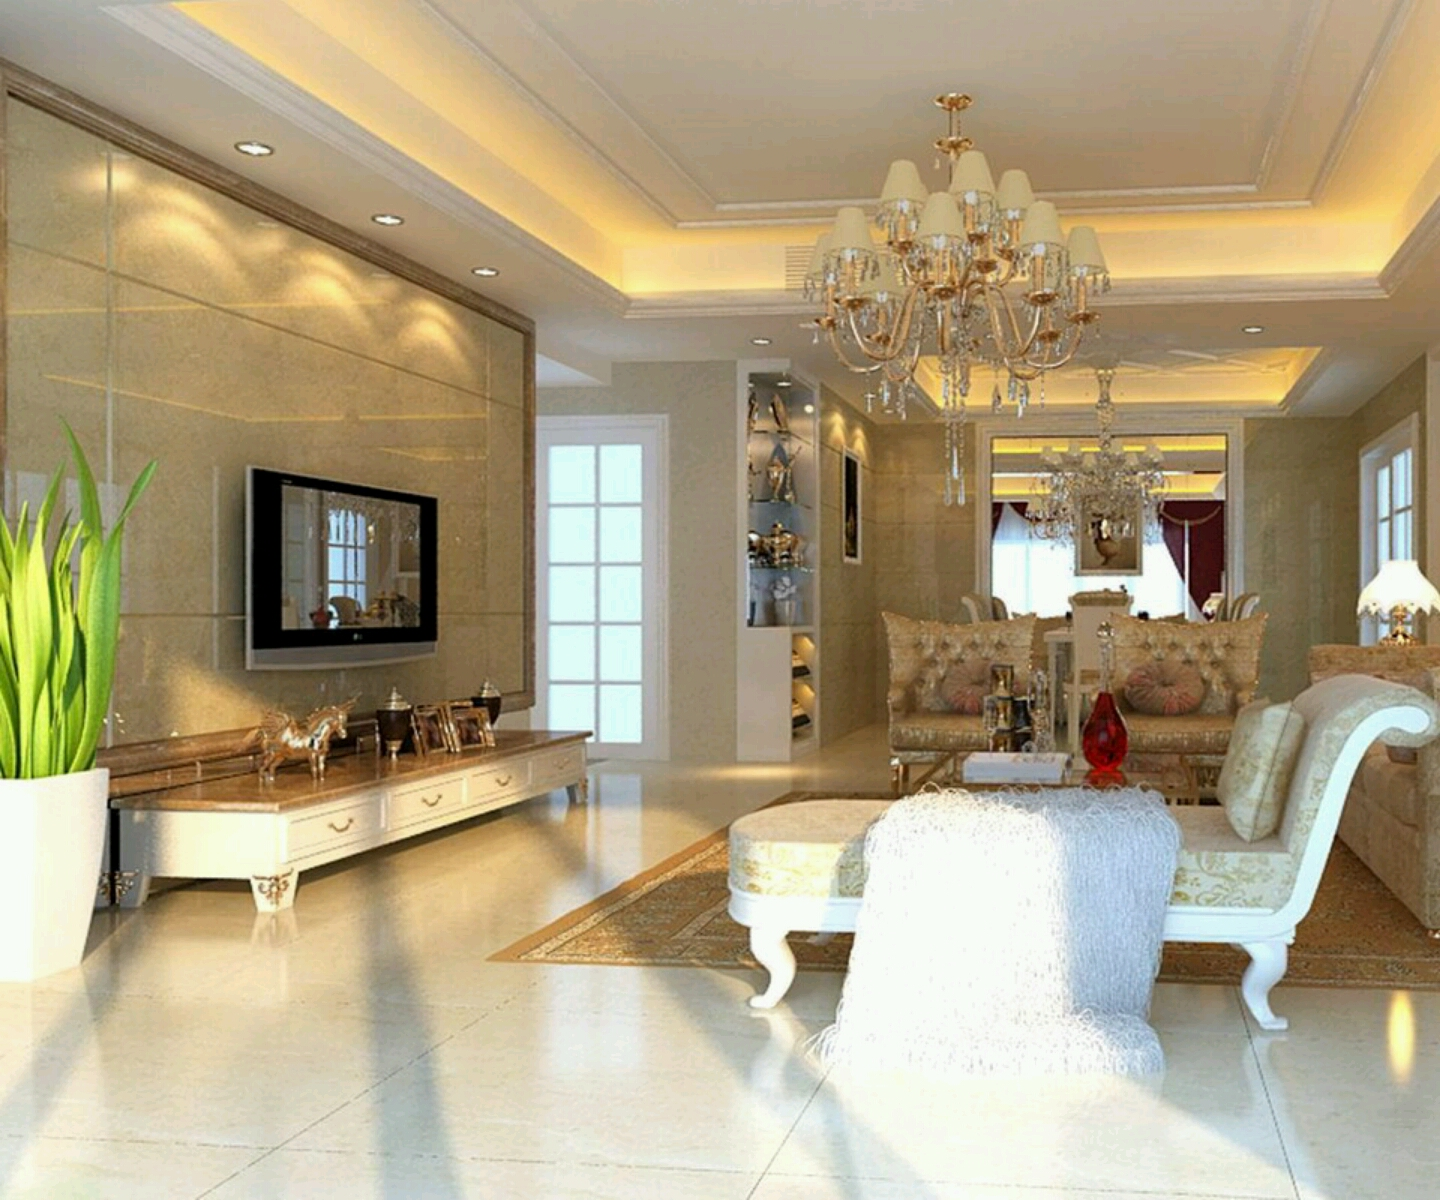 New home designs latest luxury homes interior decoration for Home inner design